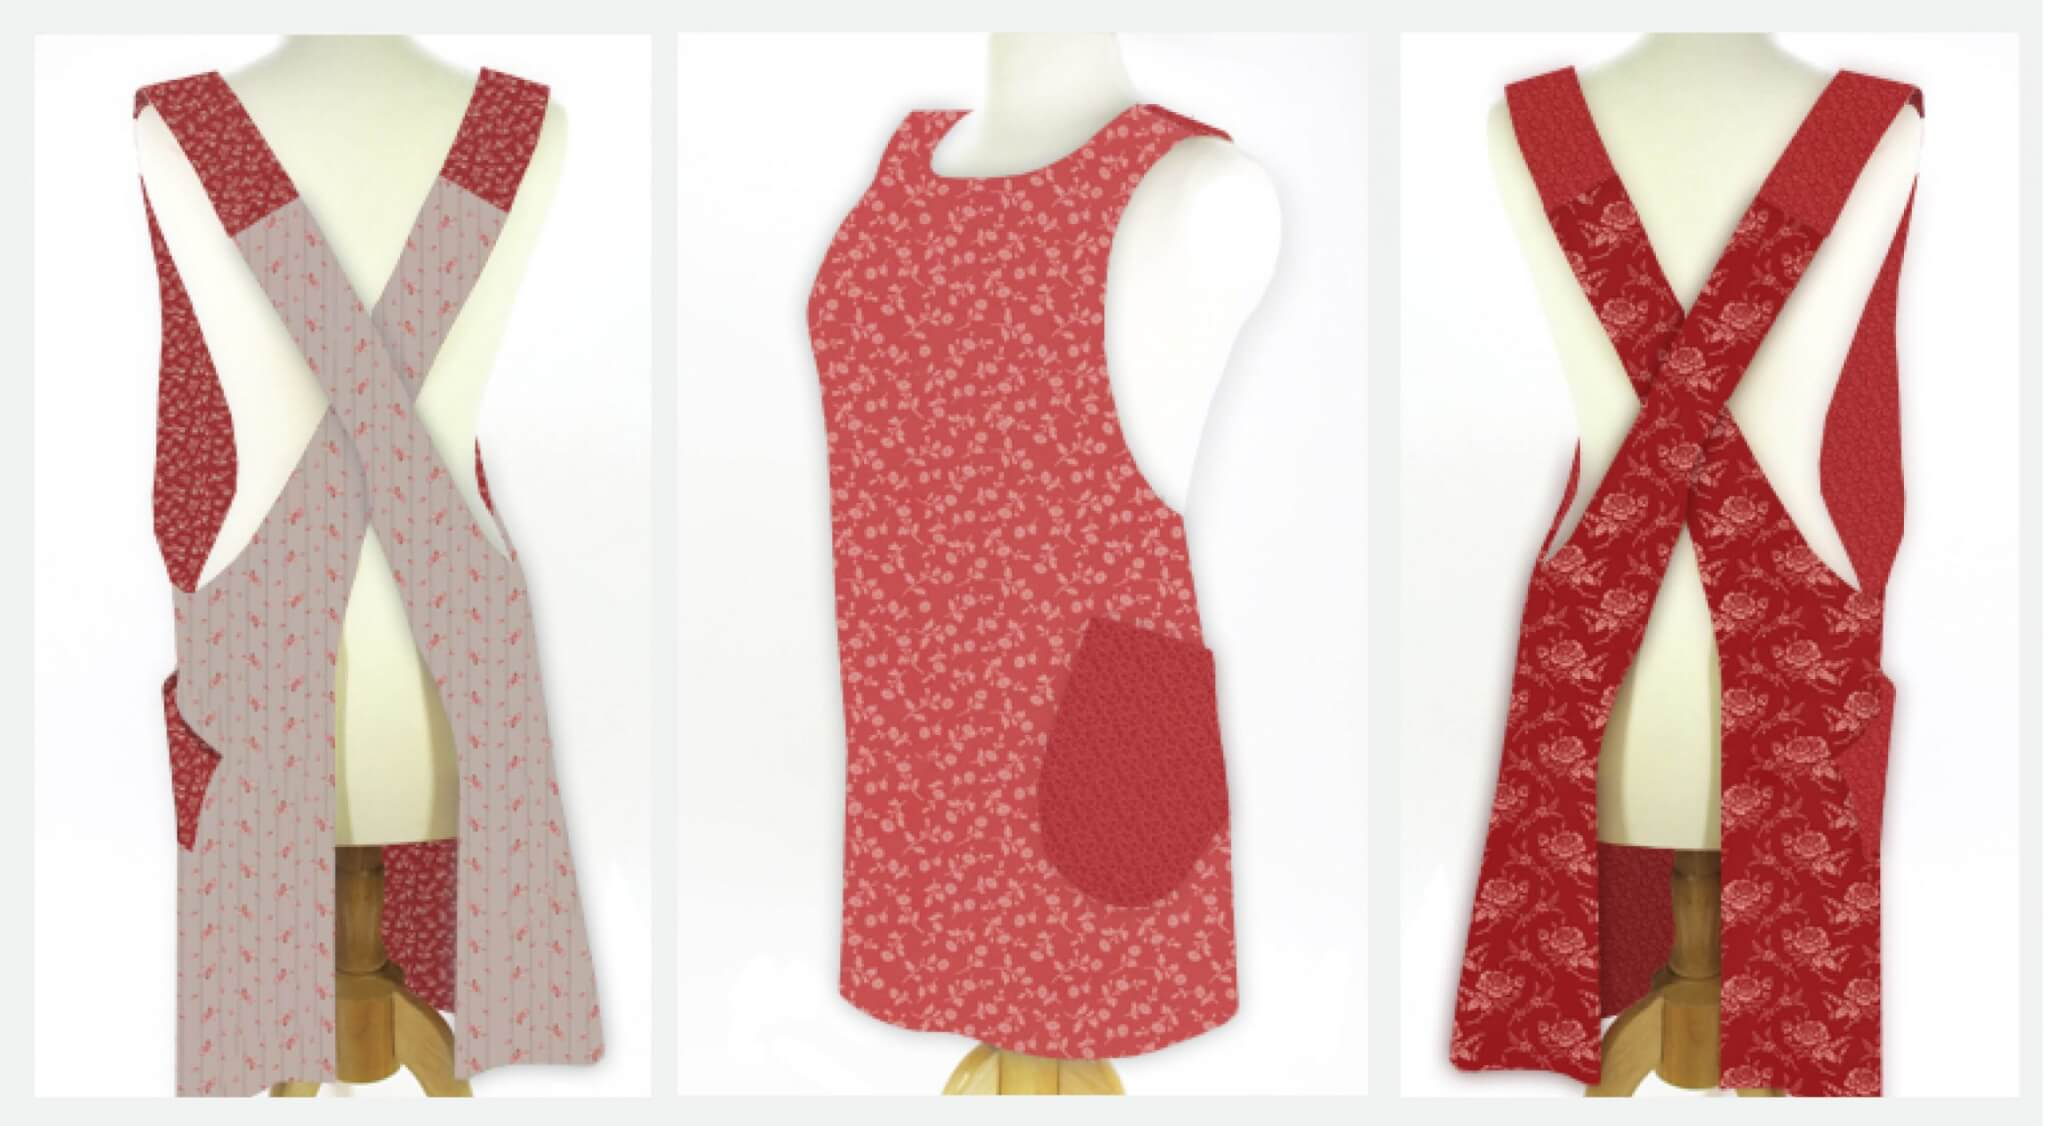 Valentines Day Crisscross Apron Sewing Project Bundles by Nancy Zieman Productions available exclusivley at ShopNZP.com